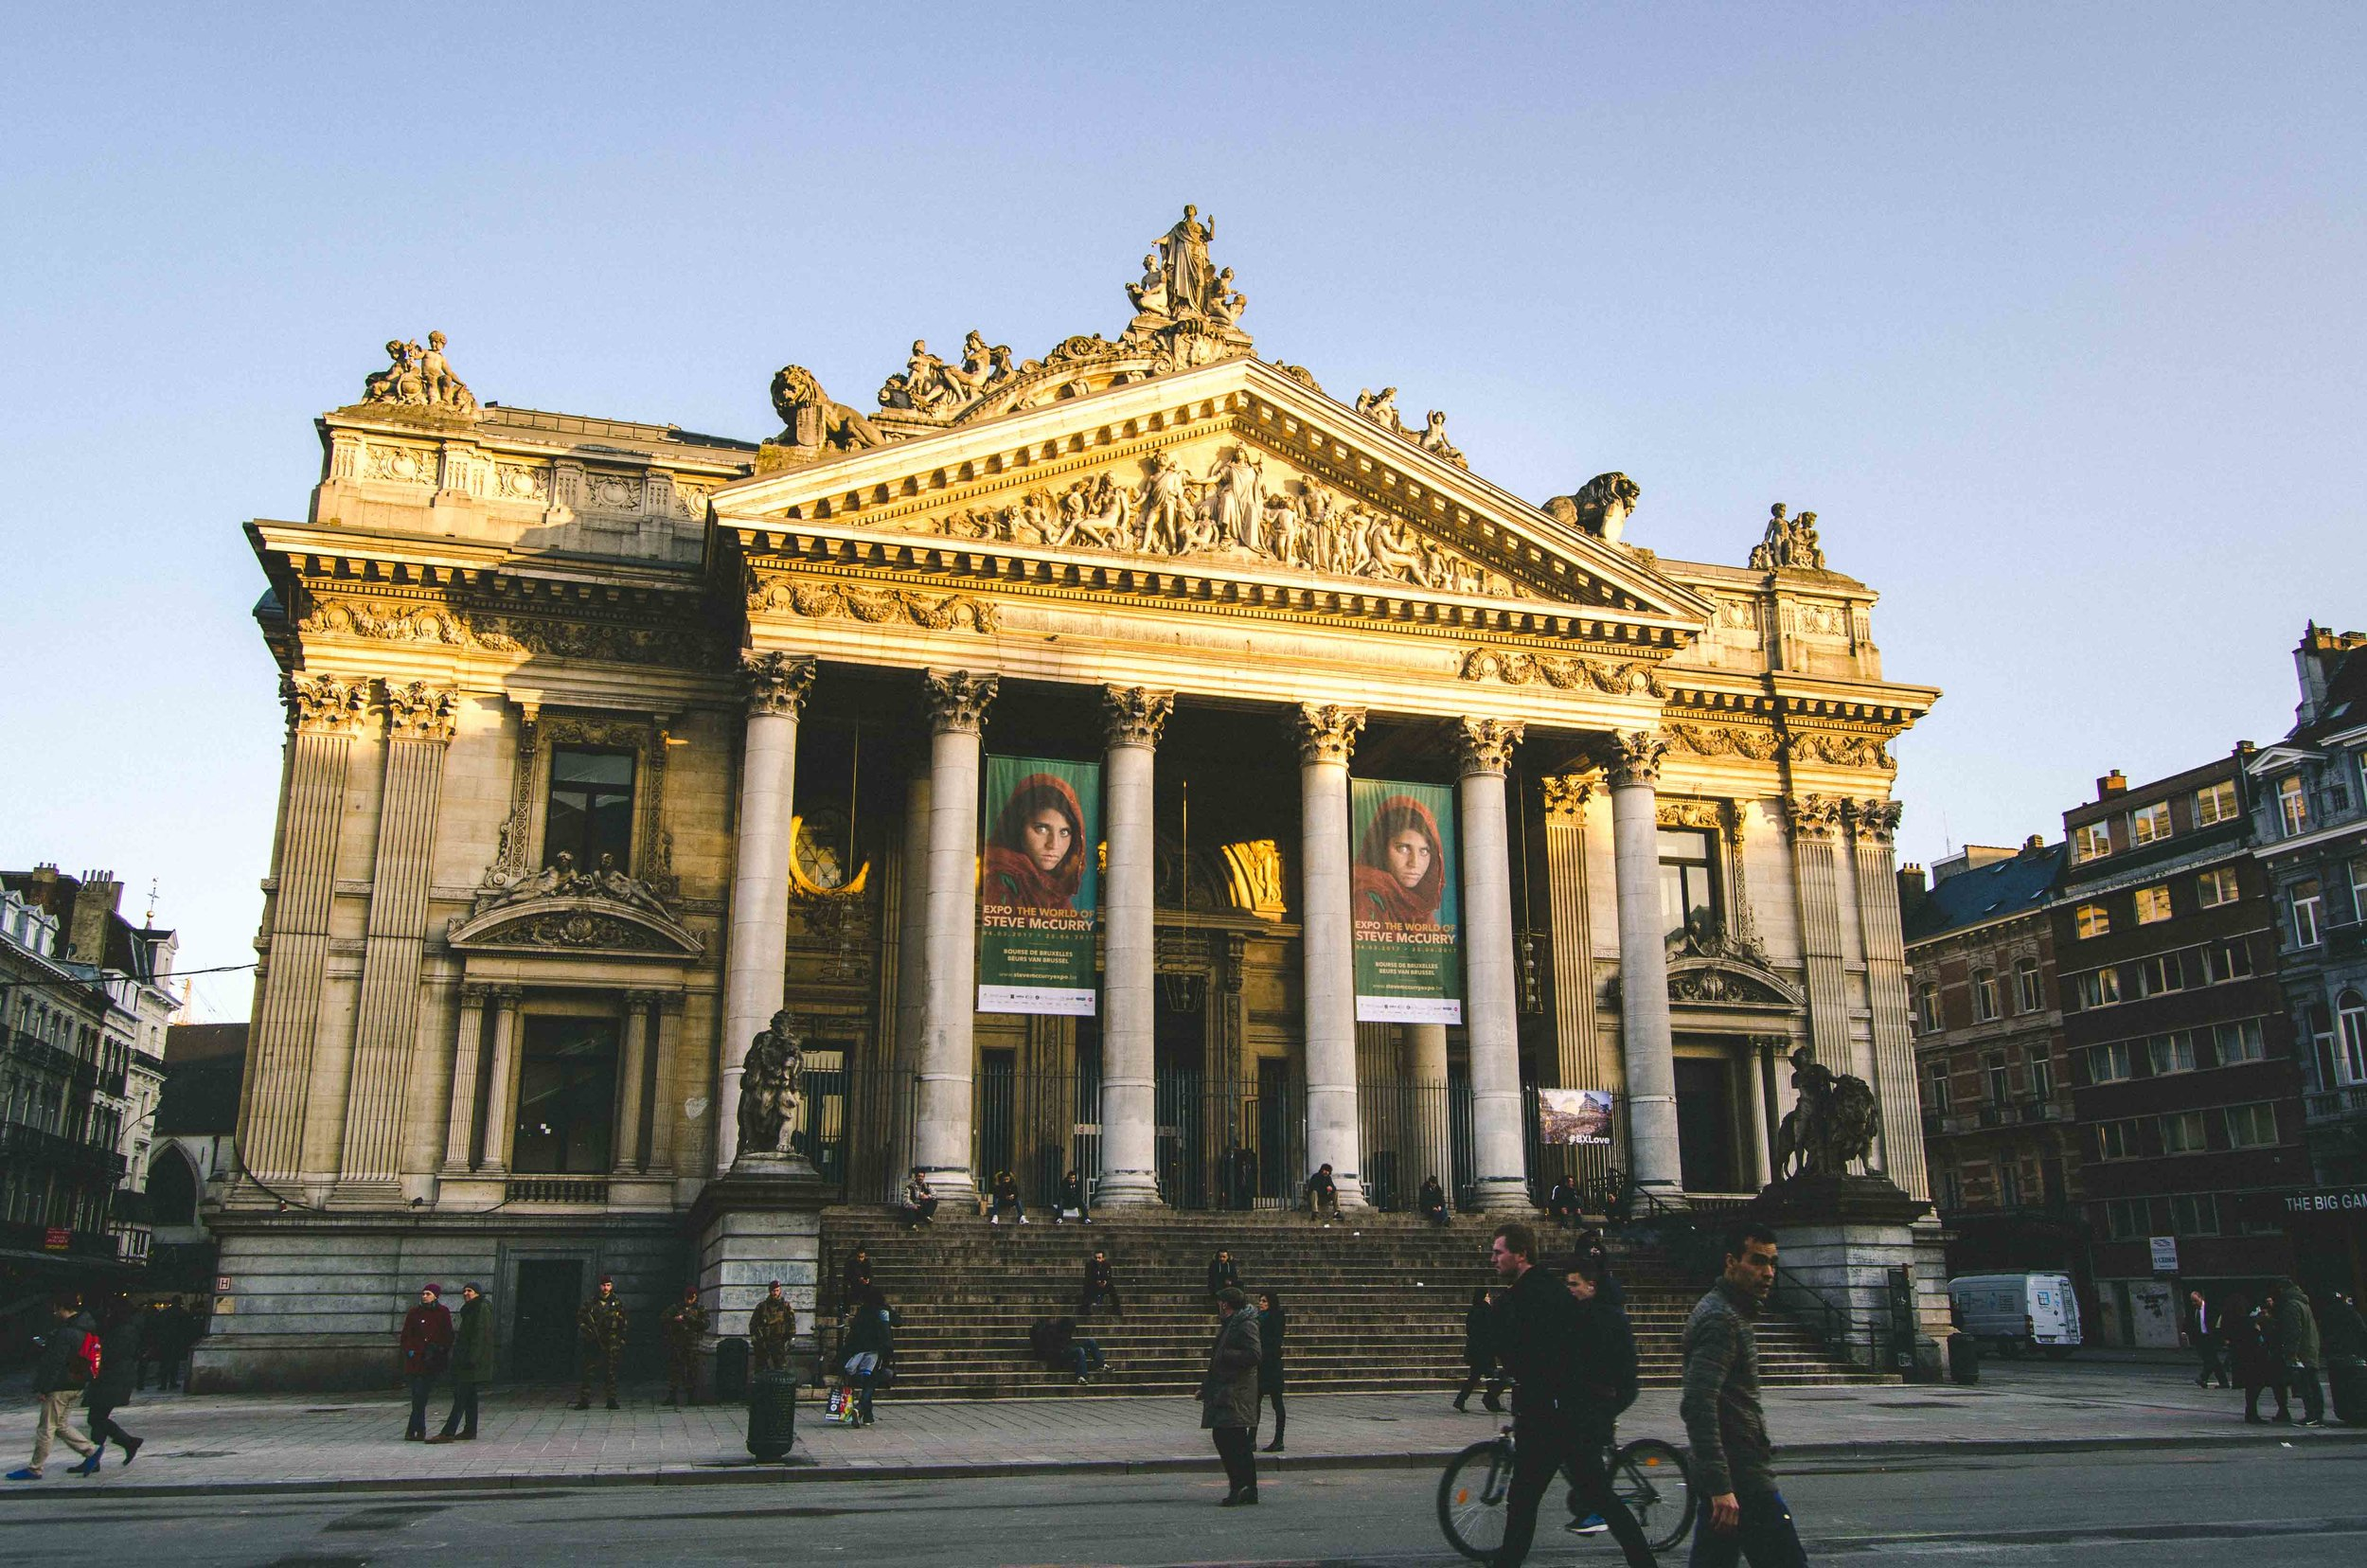 Brussels Stock Exchange building with a Steve McCurry photography exhibition